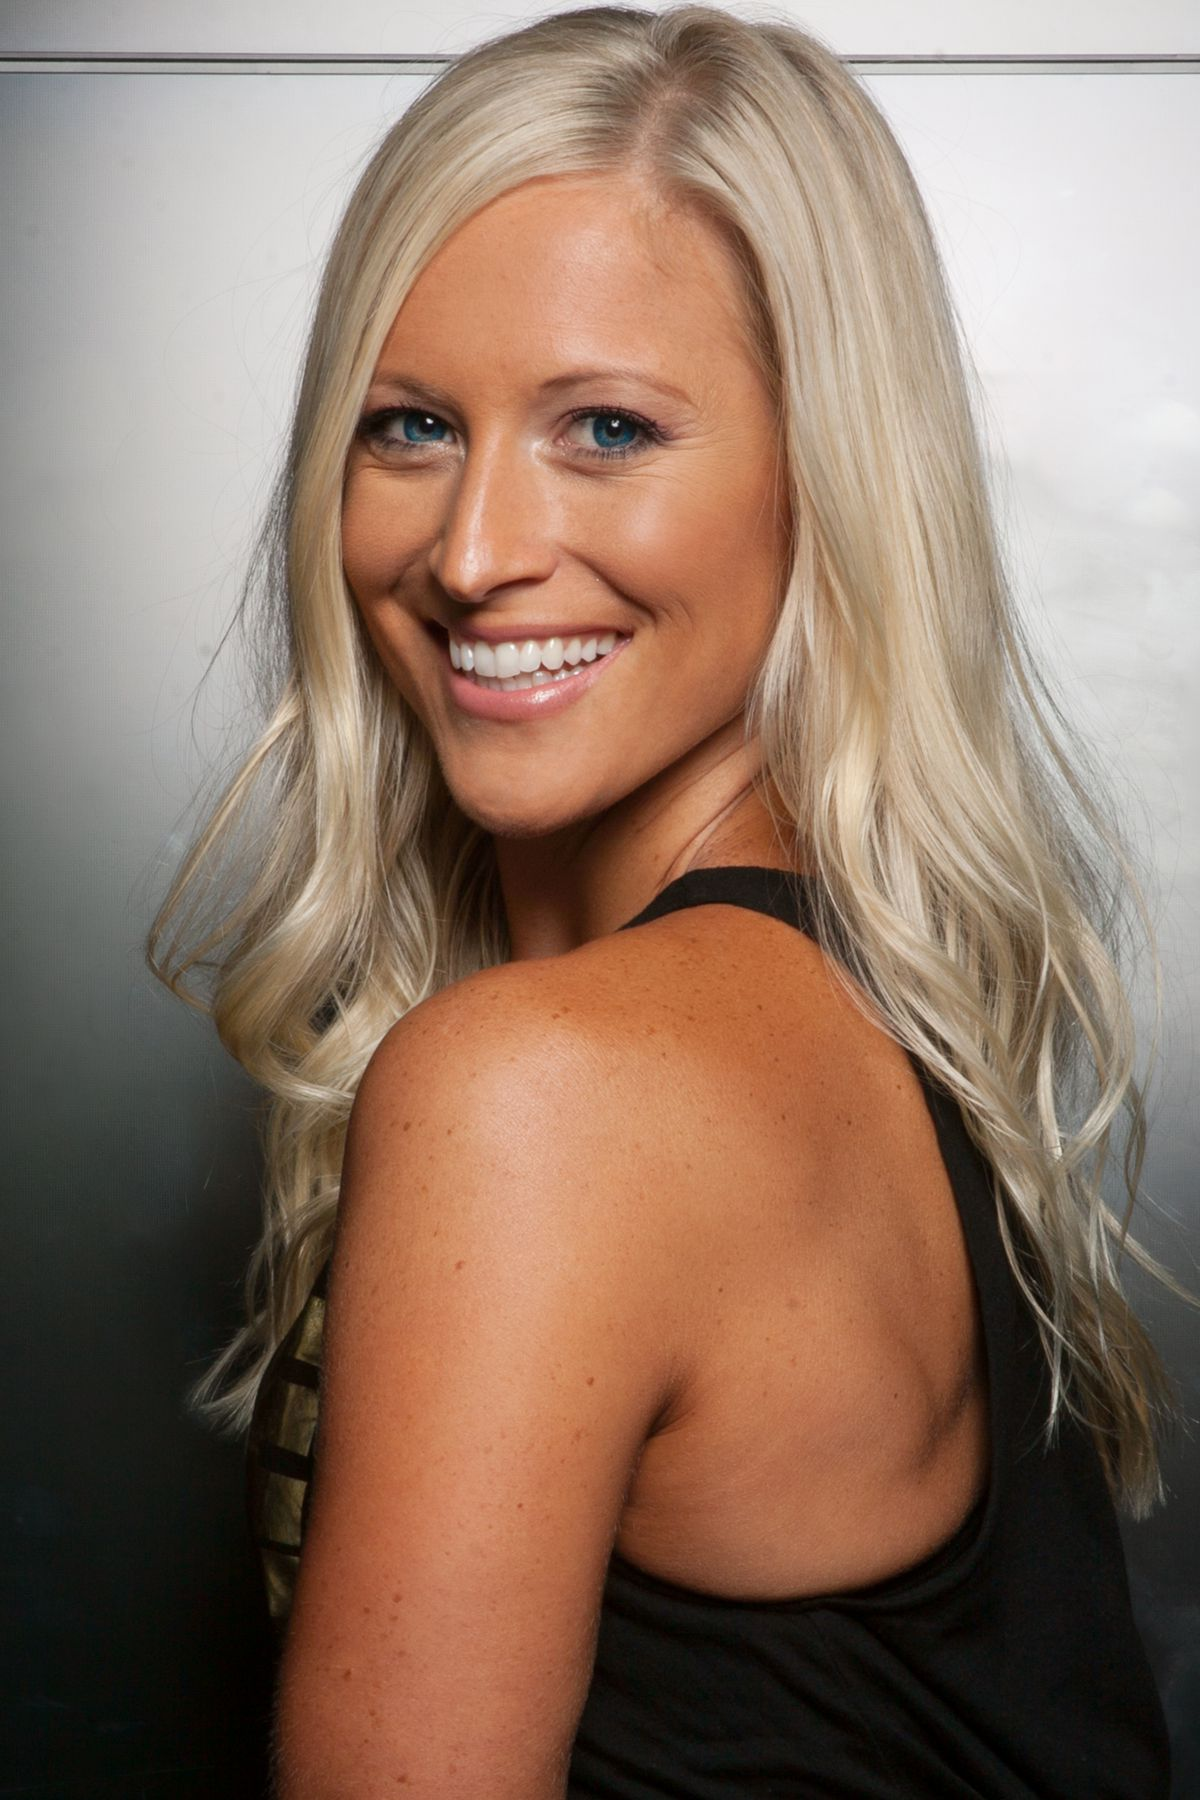 NYC's Hottest Trainer 2015, Contestant #15: Amanda Butler, The Fhitting Room